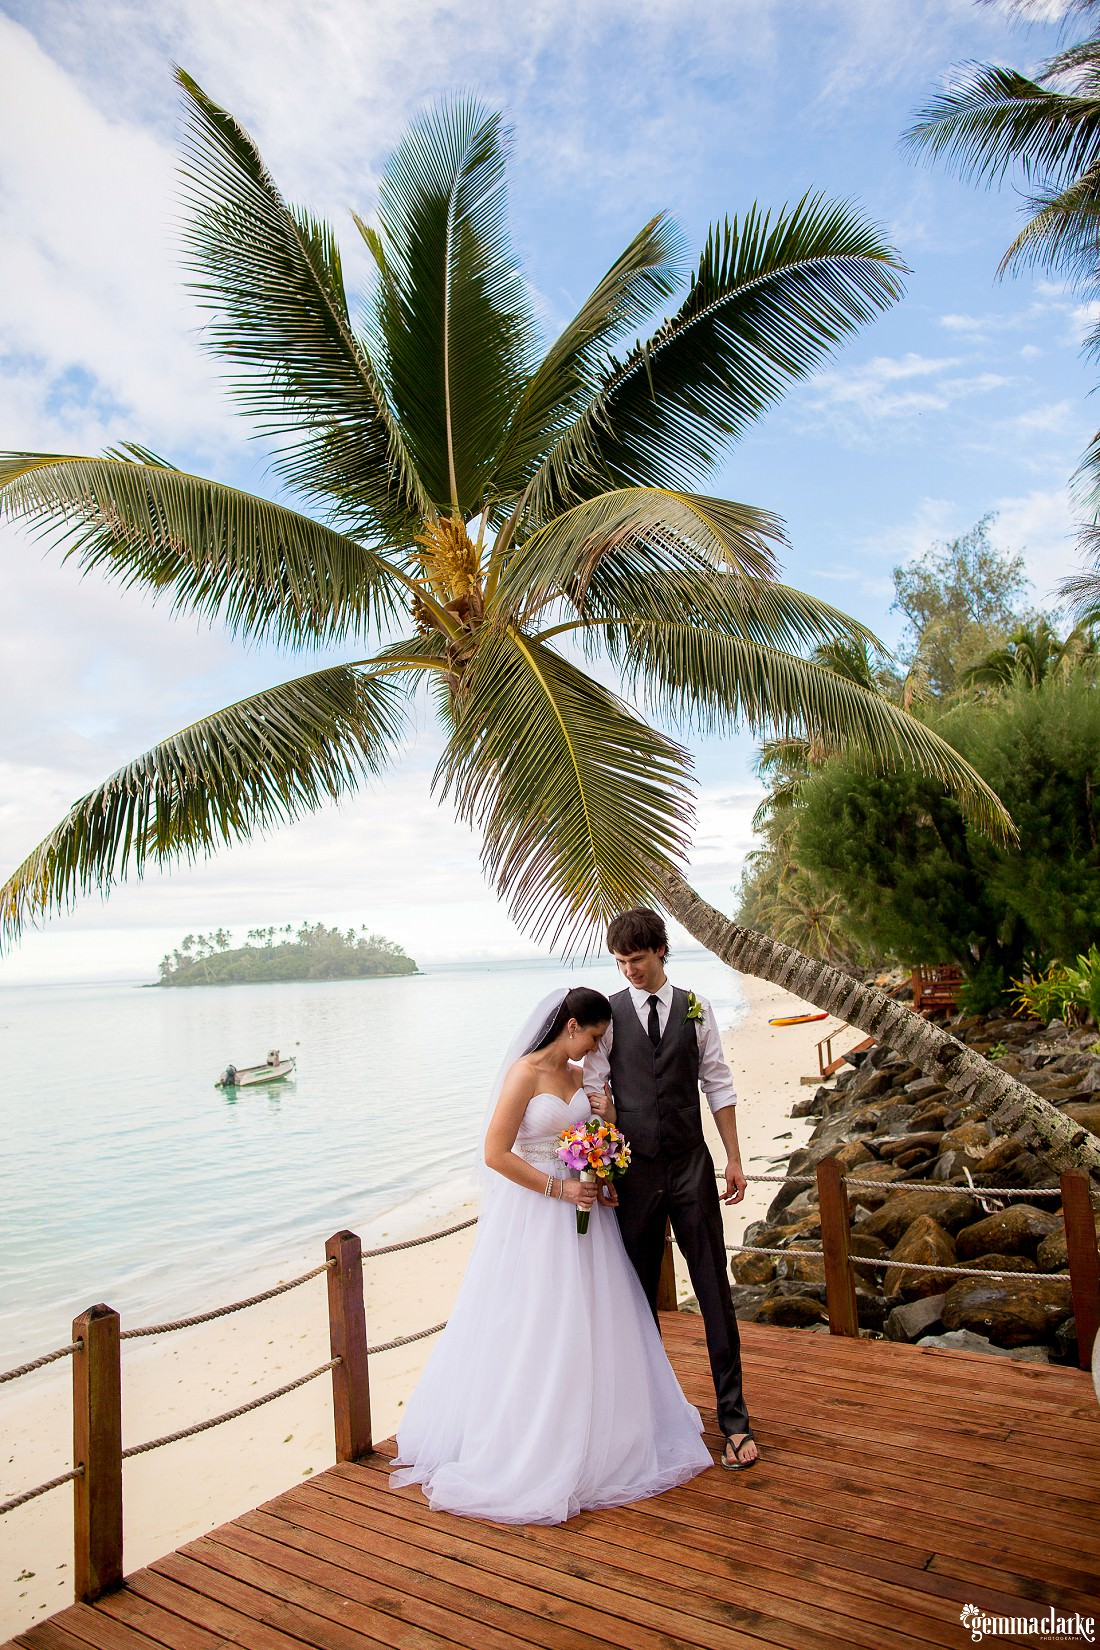 gemmaclarkephotography_south-pacific-destination-wedding_island-wedding_natalie-and-alex_0053